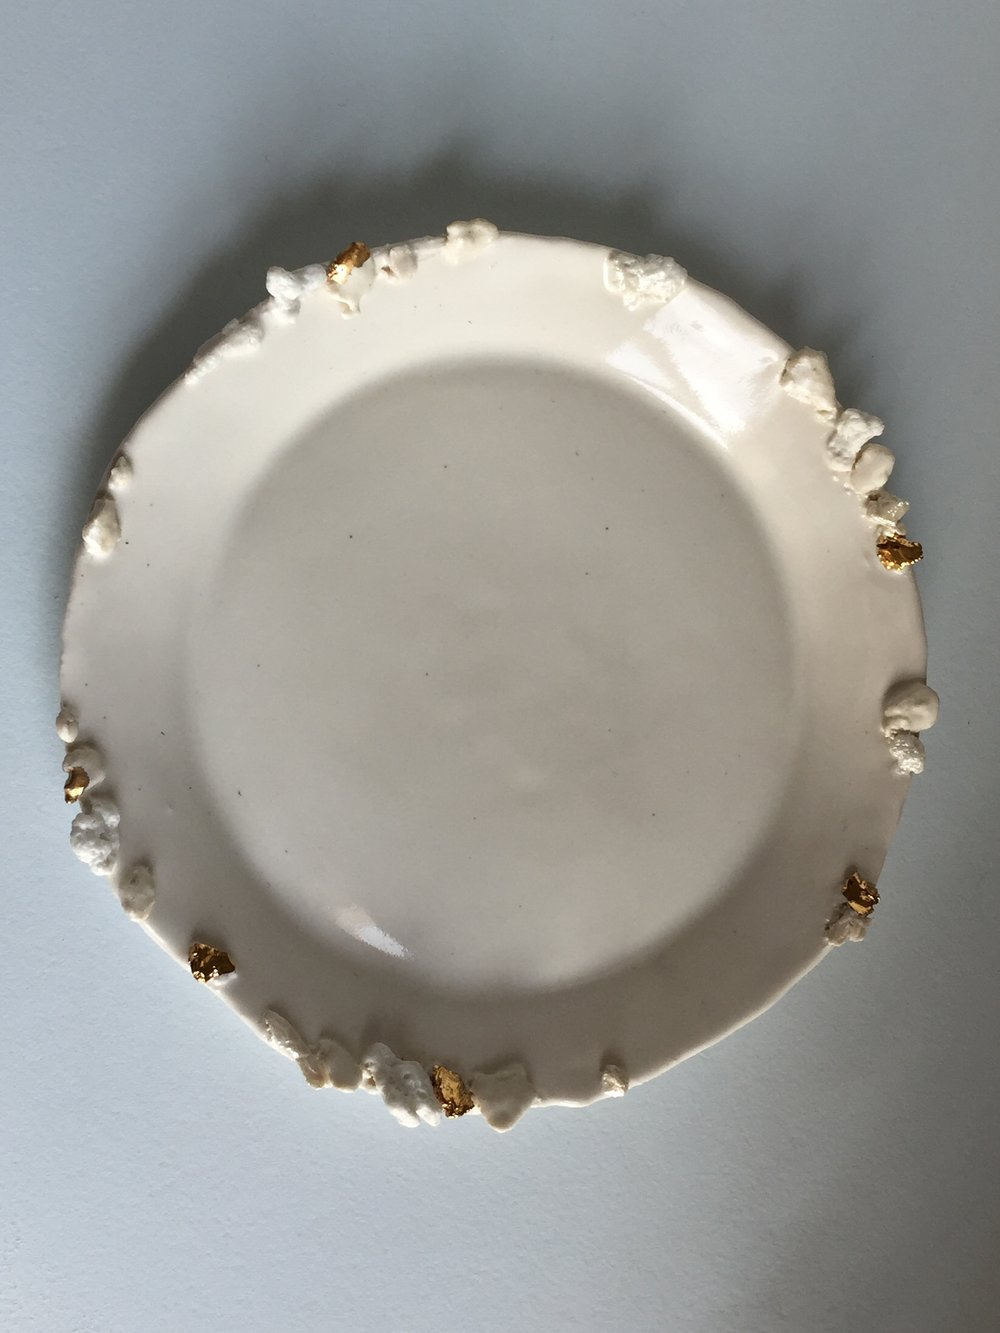 20 Small Halo Plate on Porcelain.jpg